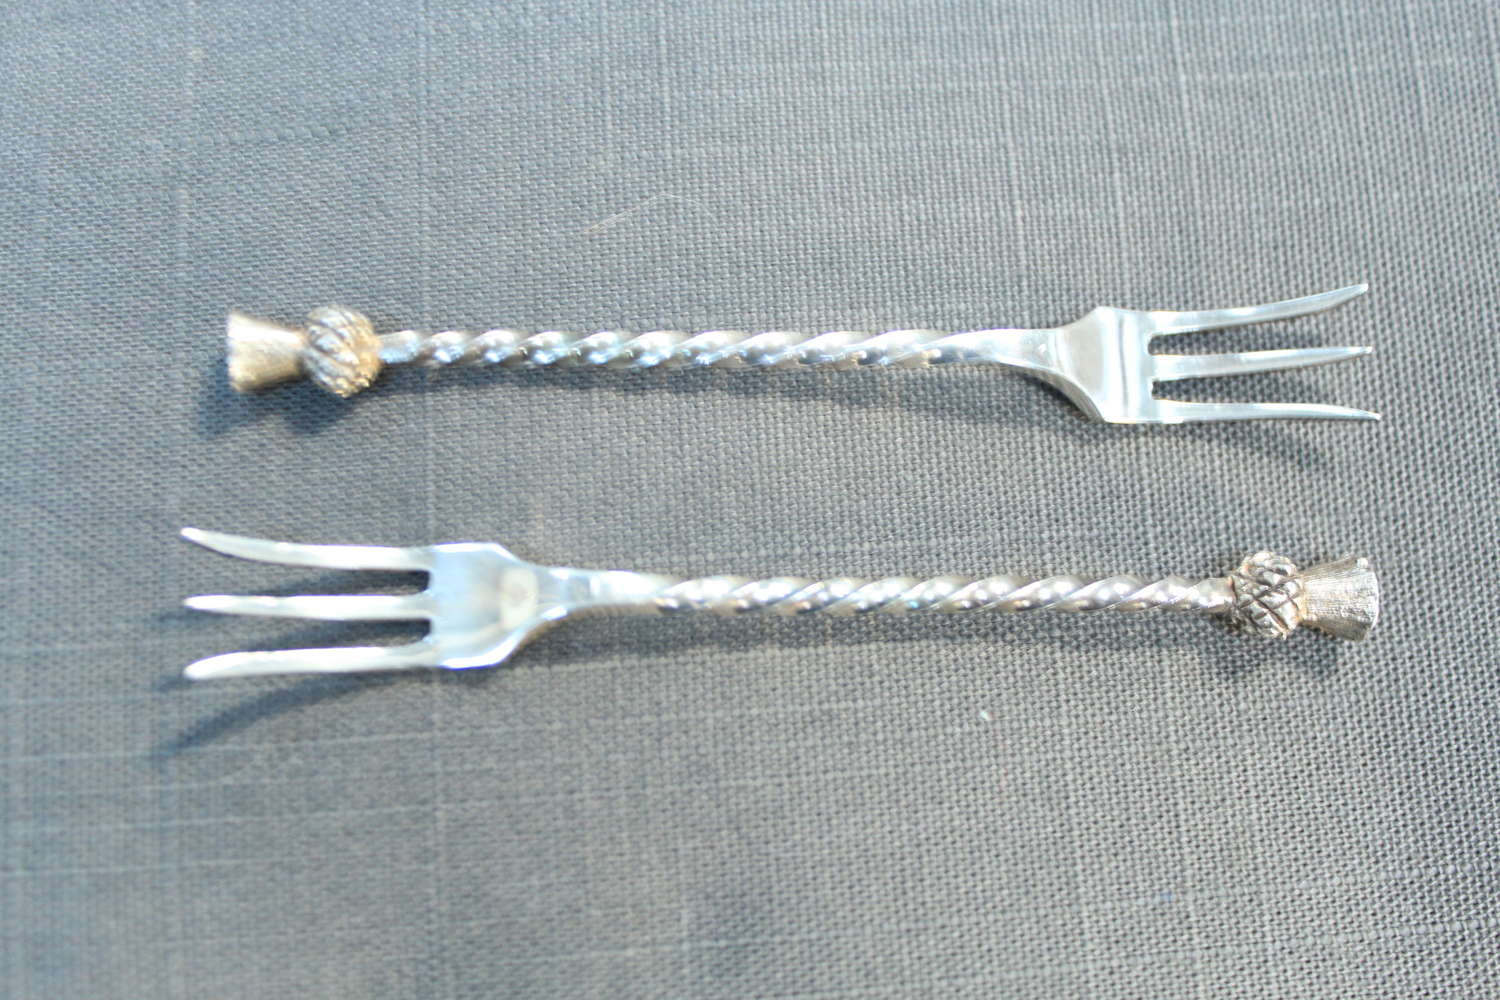 A pair of Plated Pickle Forks